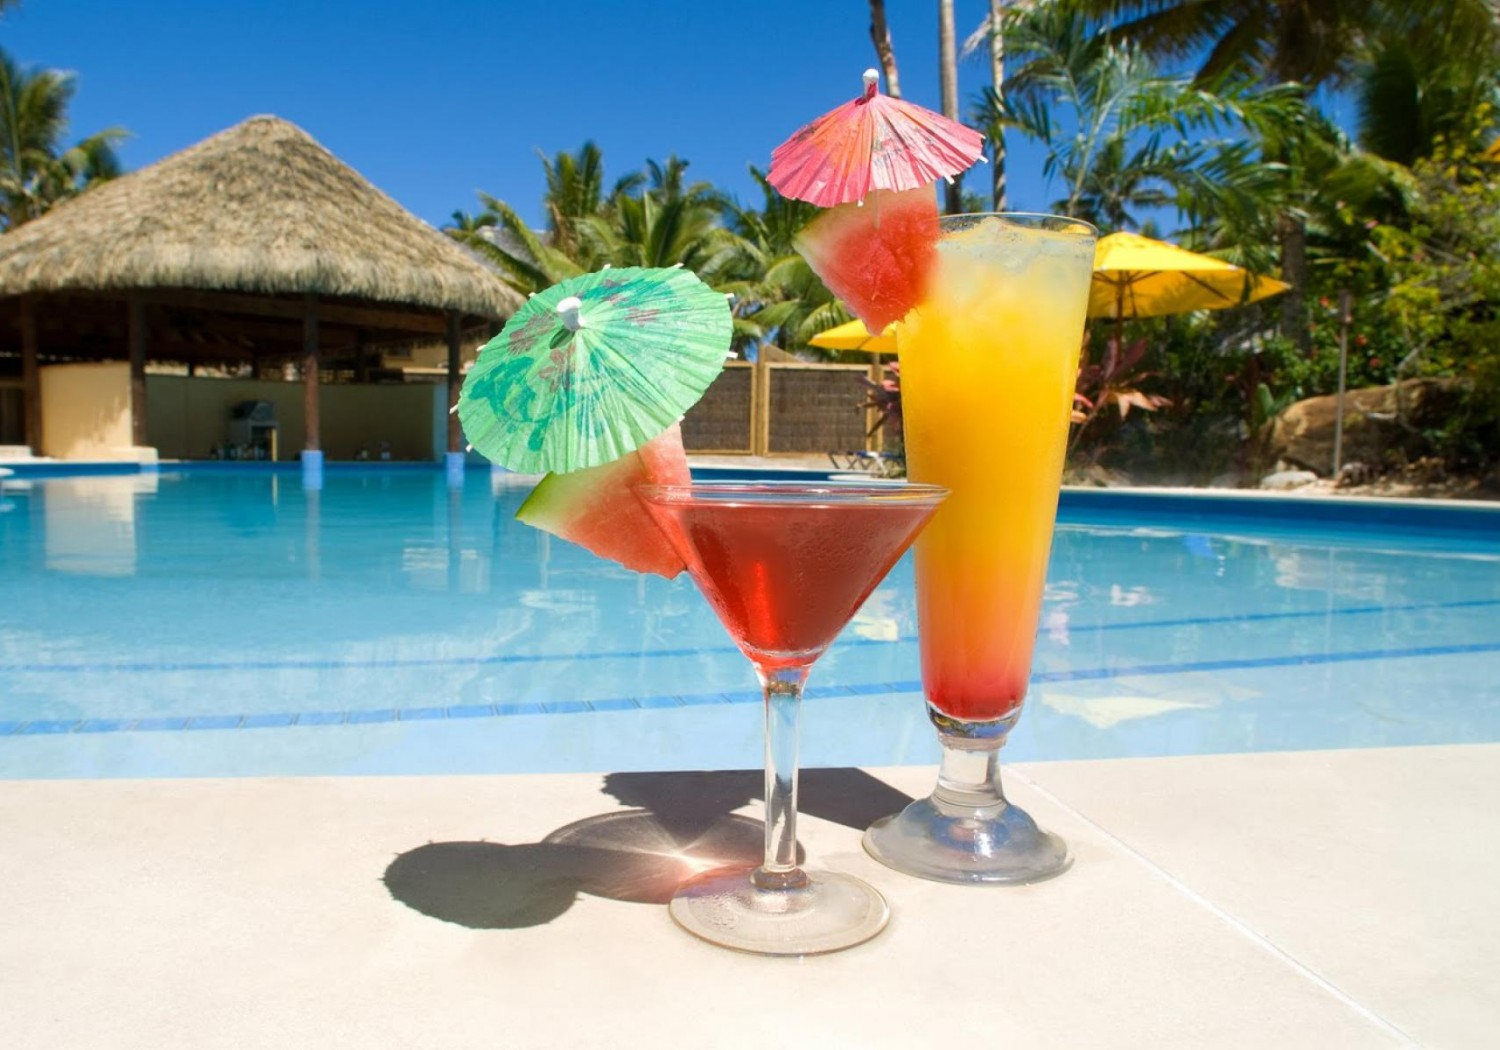 Pool party ideas for adults ccsi international inc - How to make a pool party ...